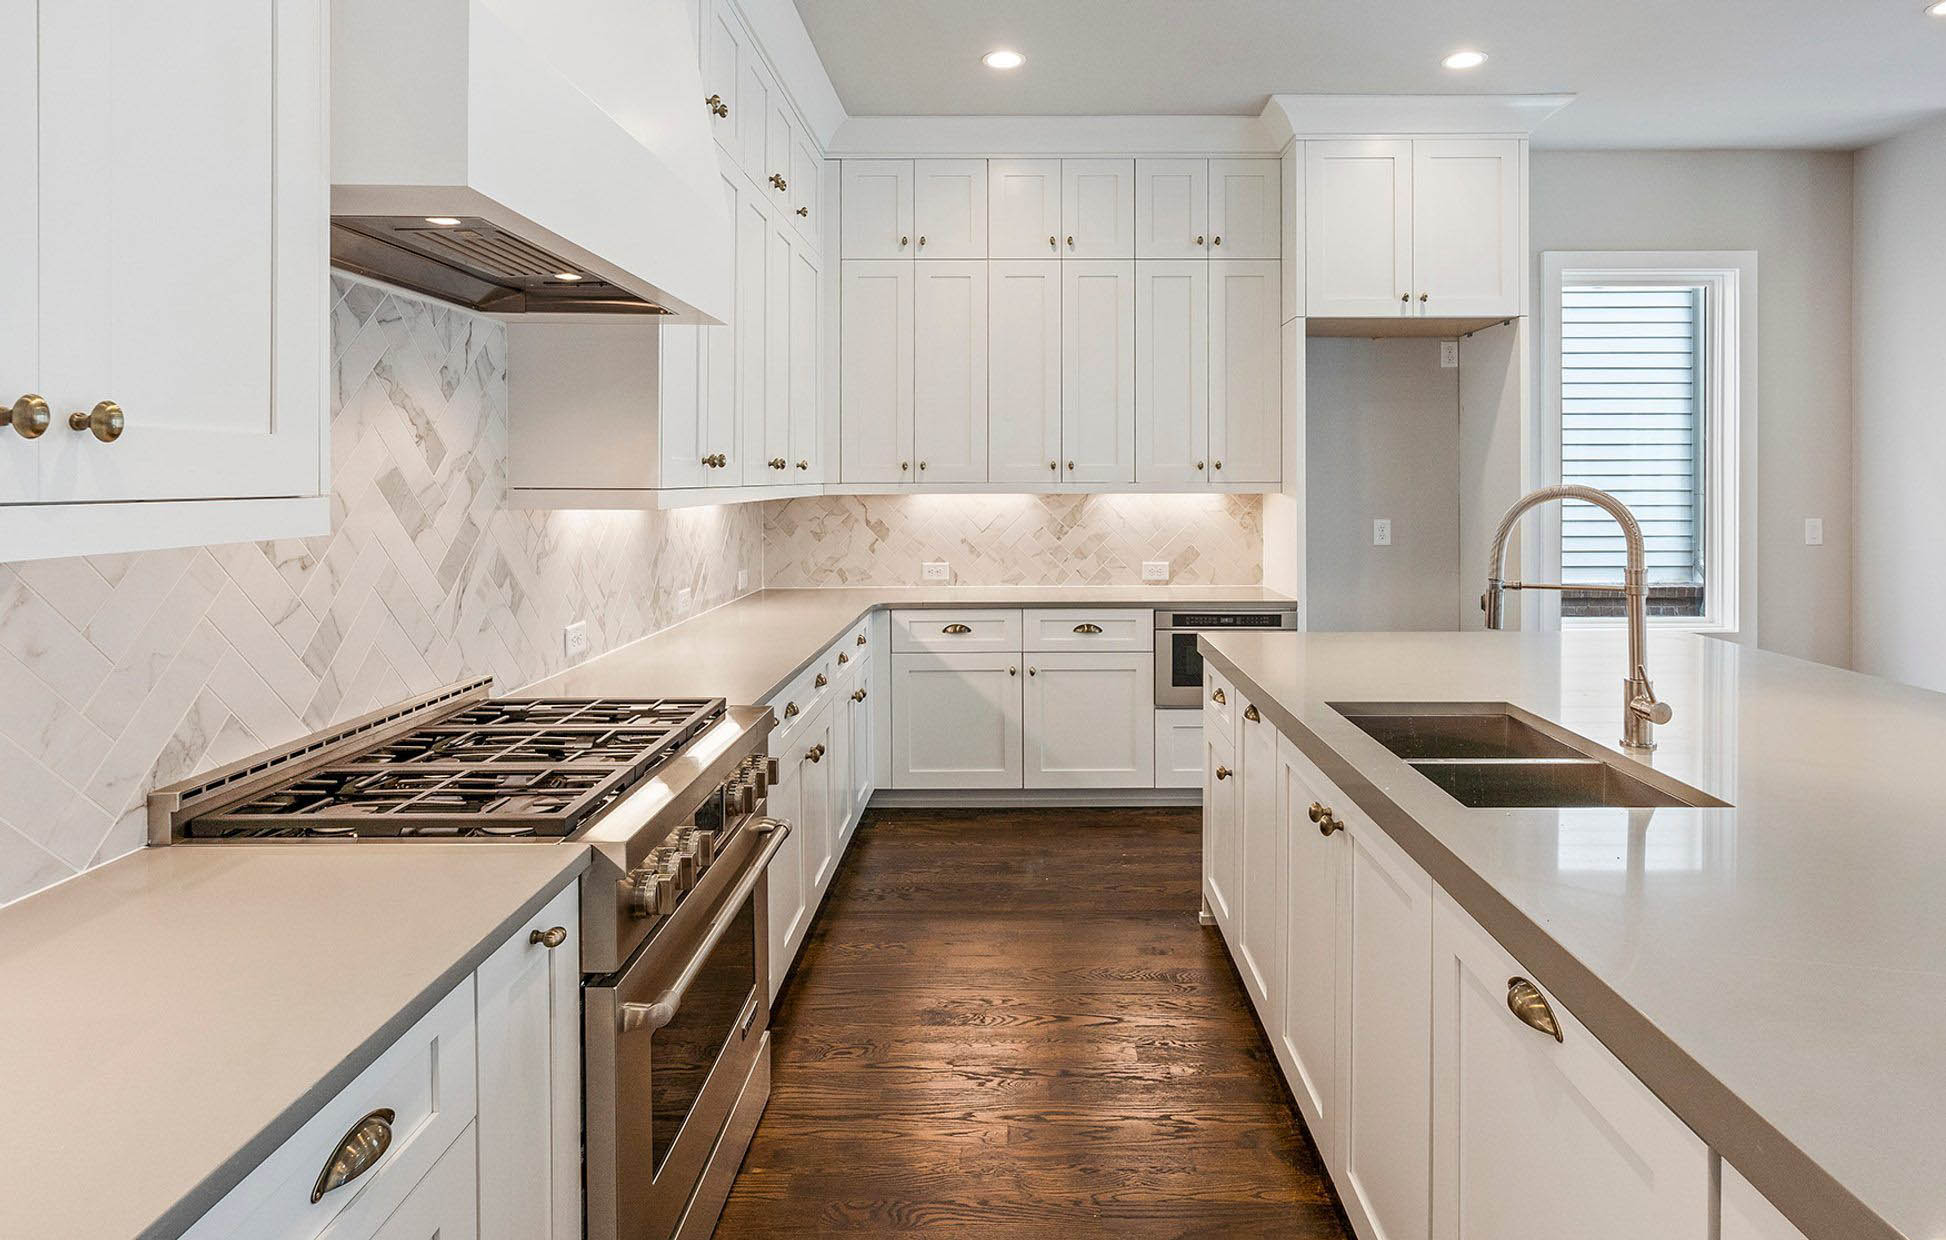 Gray quartz kitchen countertops with white cabinets and porcelain marble backsplash. Stainless steel appliances and rustic hardwood floors.